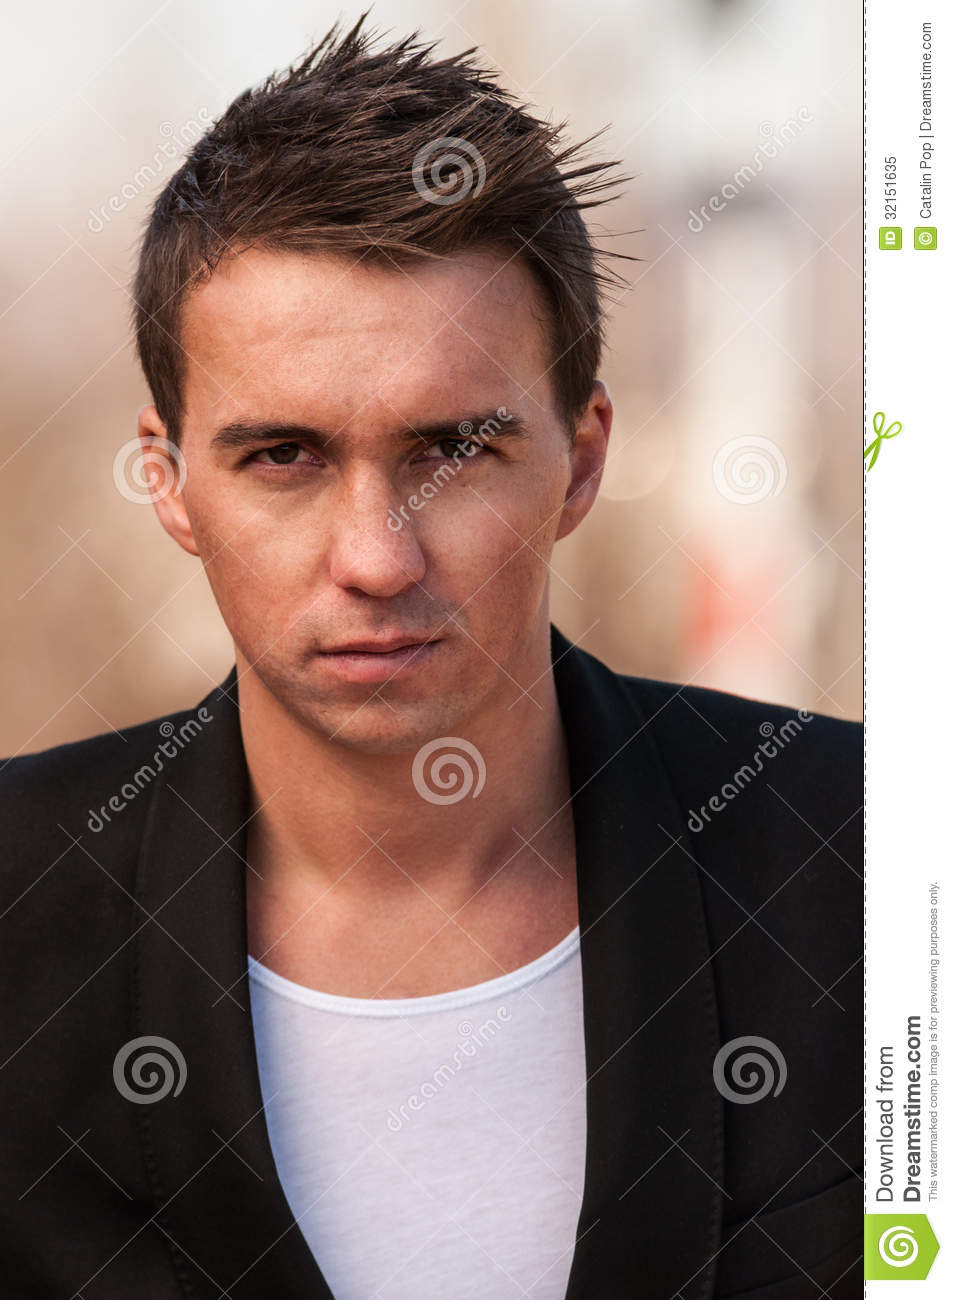 9405c270177c Portrait of a man wearing a black jacket and a white t-shirt underneath